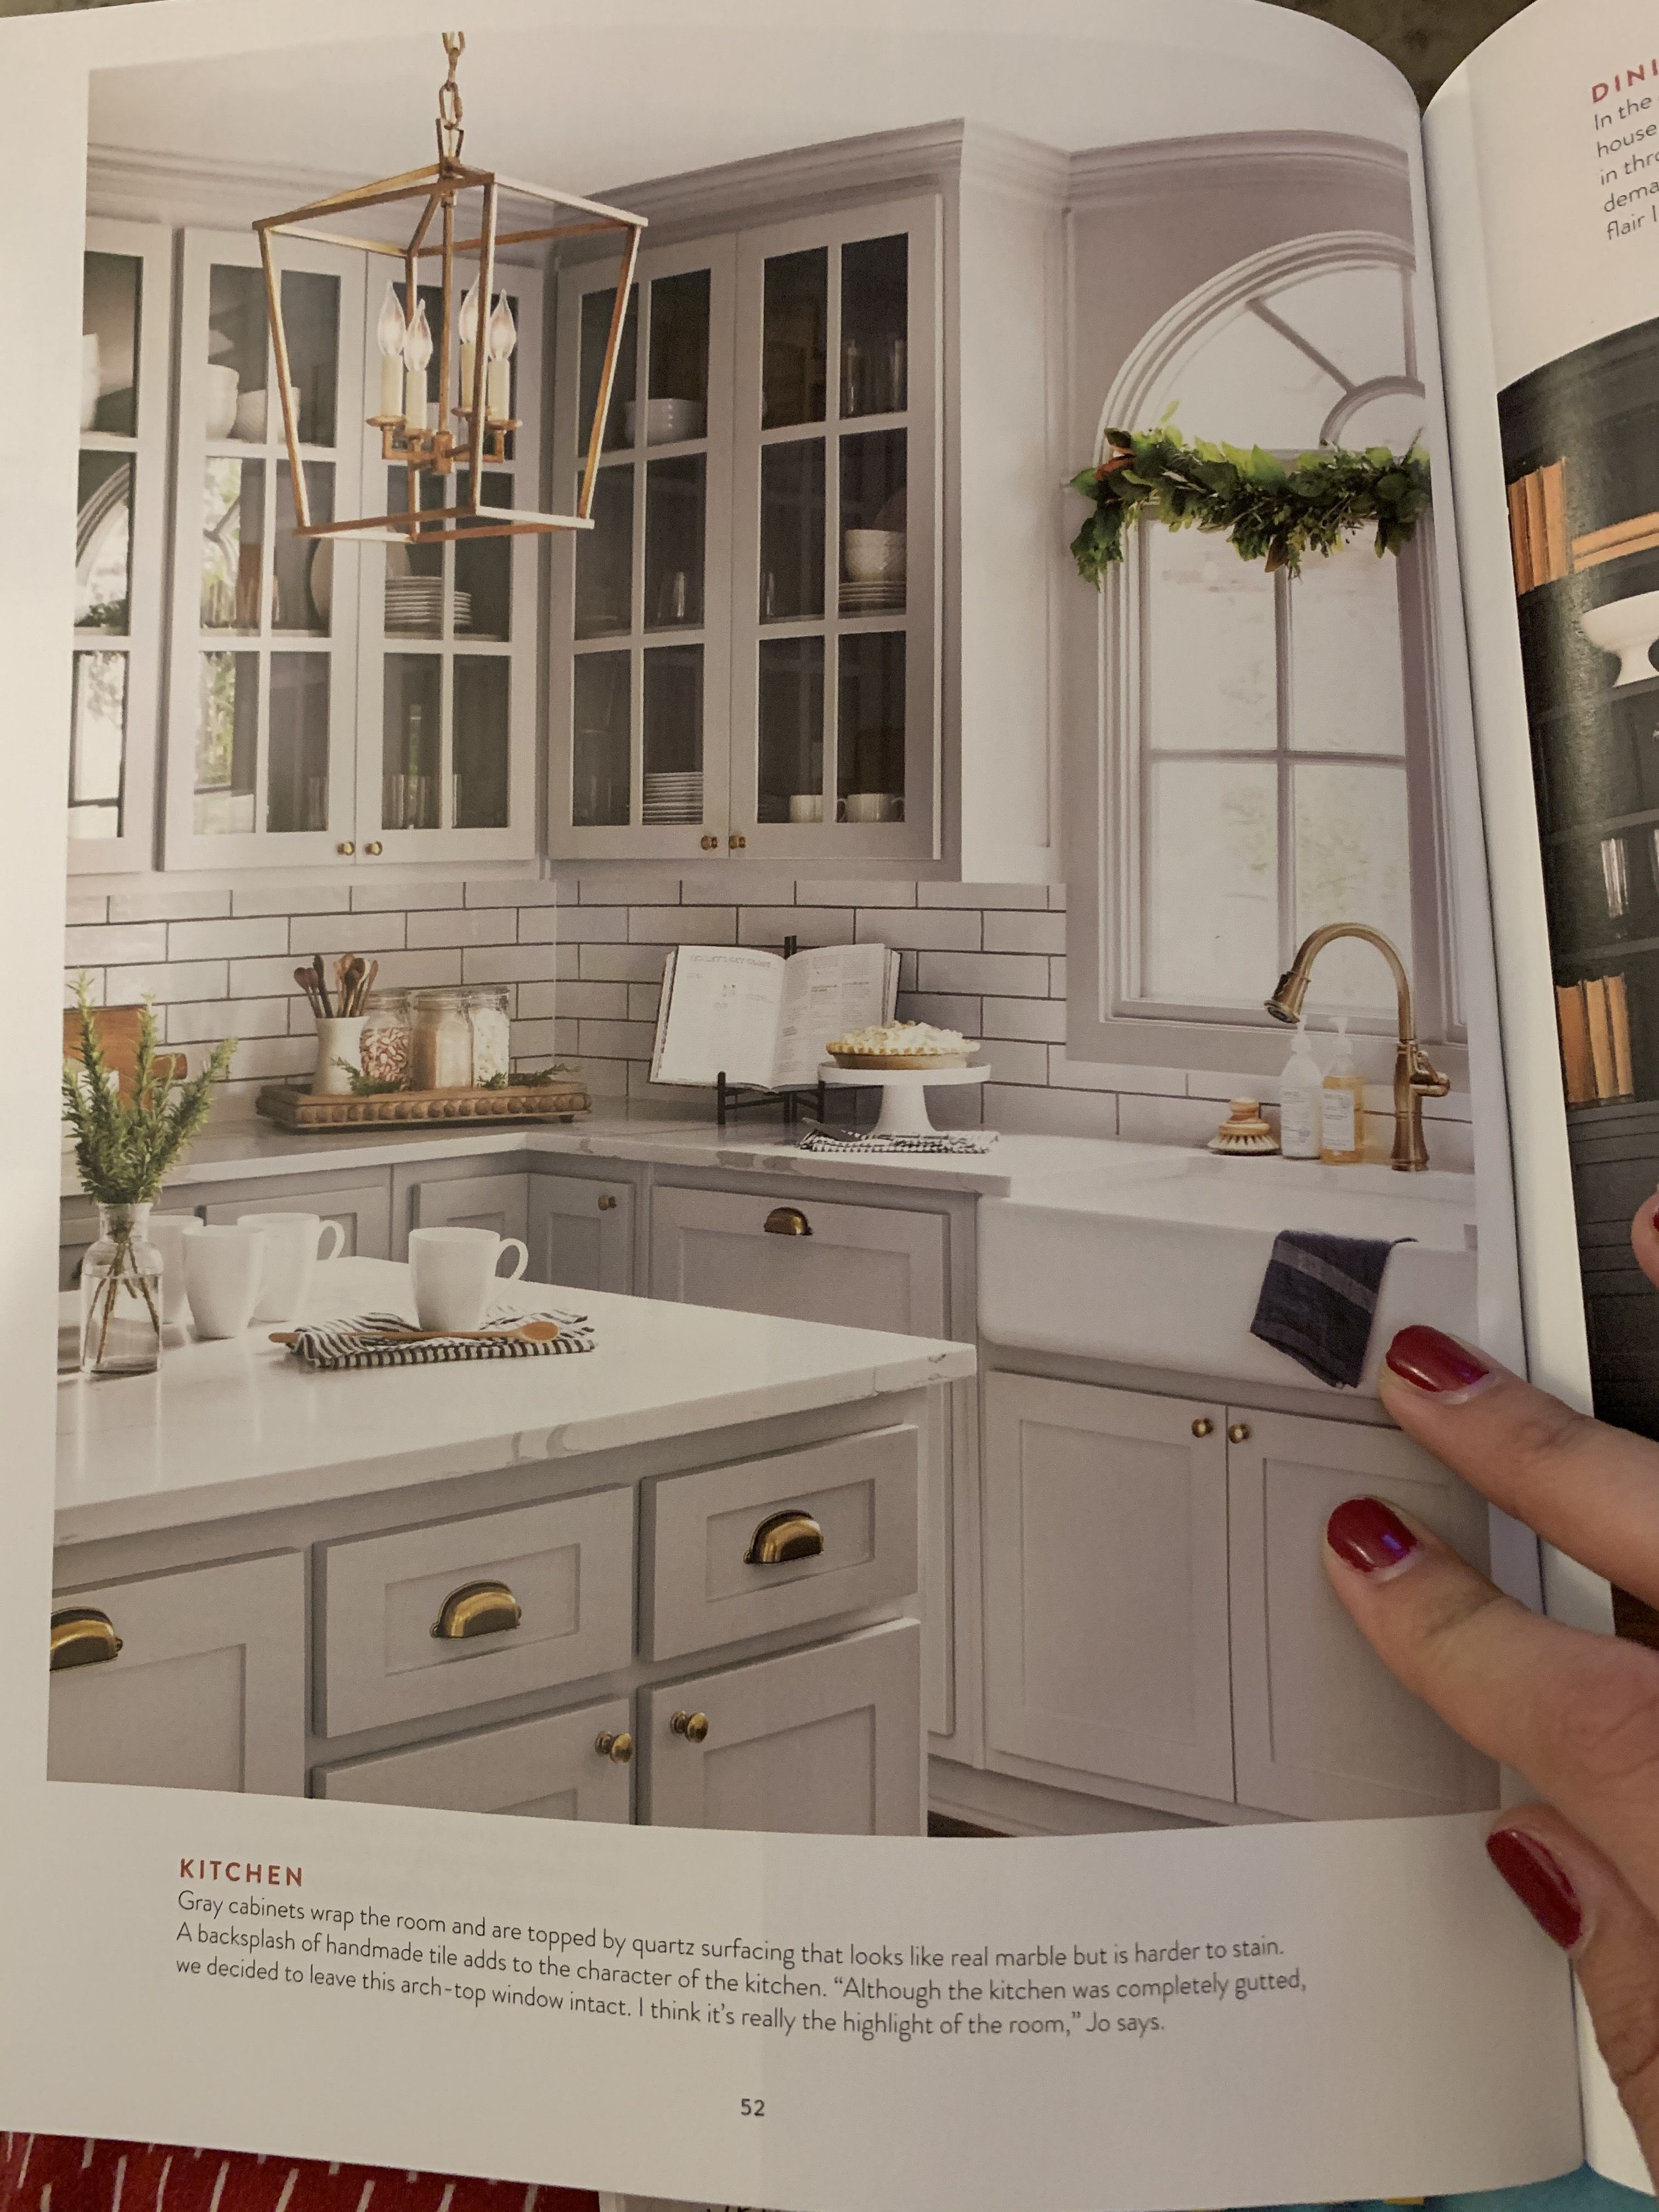 Pin by Chelsea Knese on Kitchen ideas (With images) Ikea